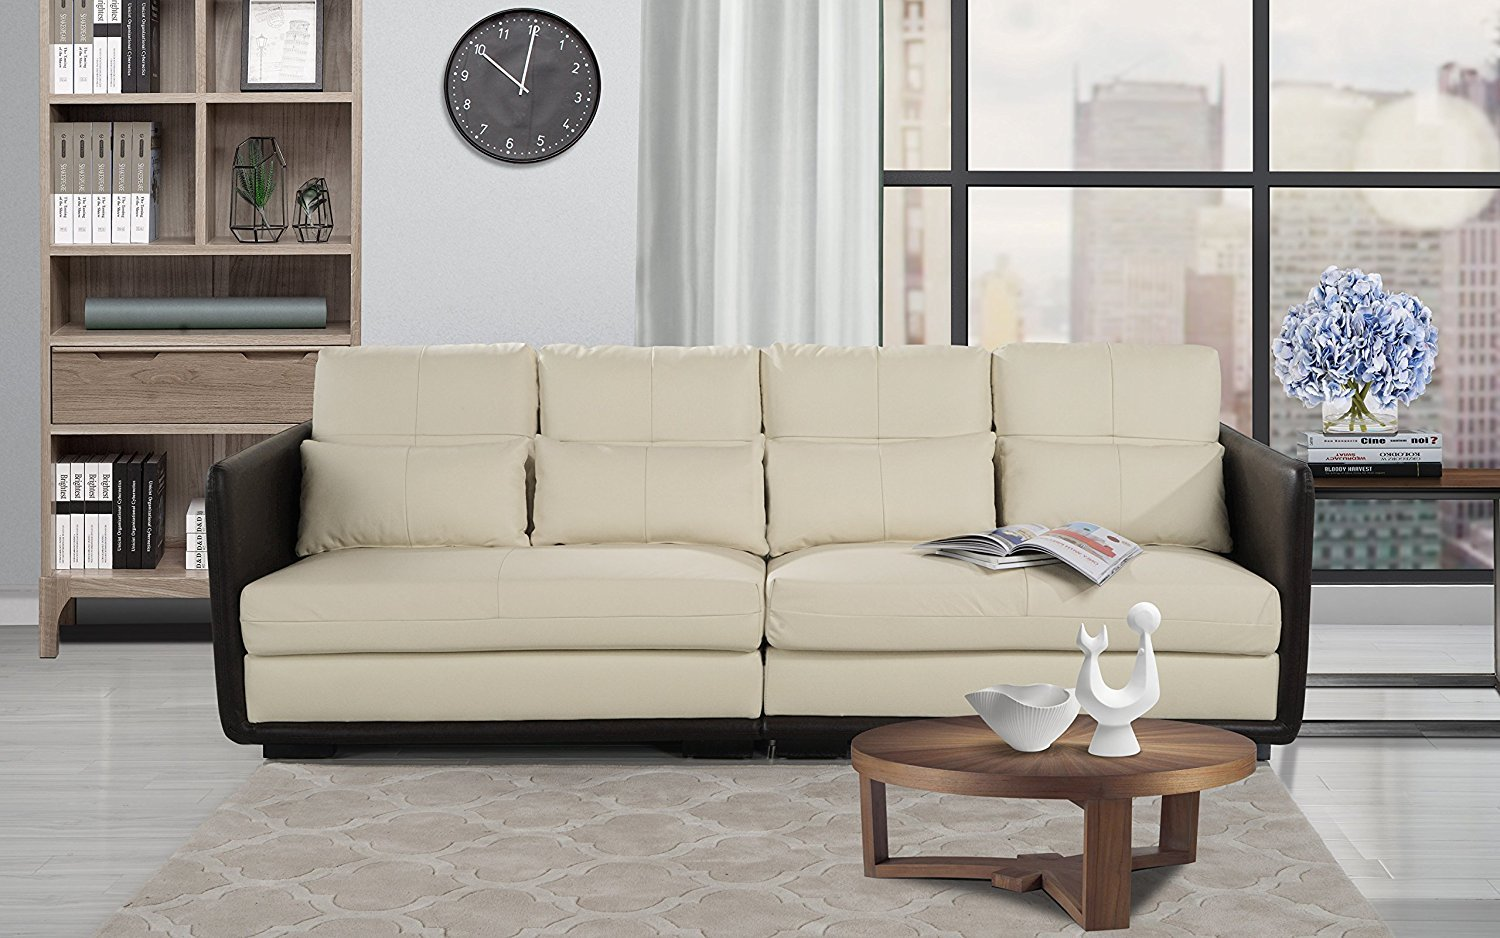 Classic 2 Piece Convertible Living Room Leather Sofa, Adjustable ...